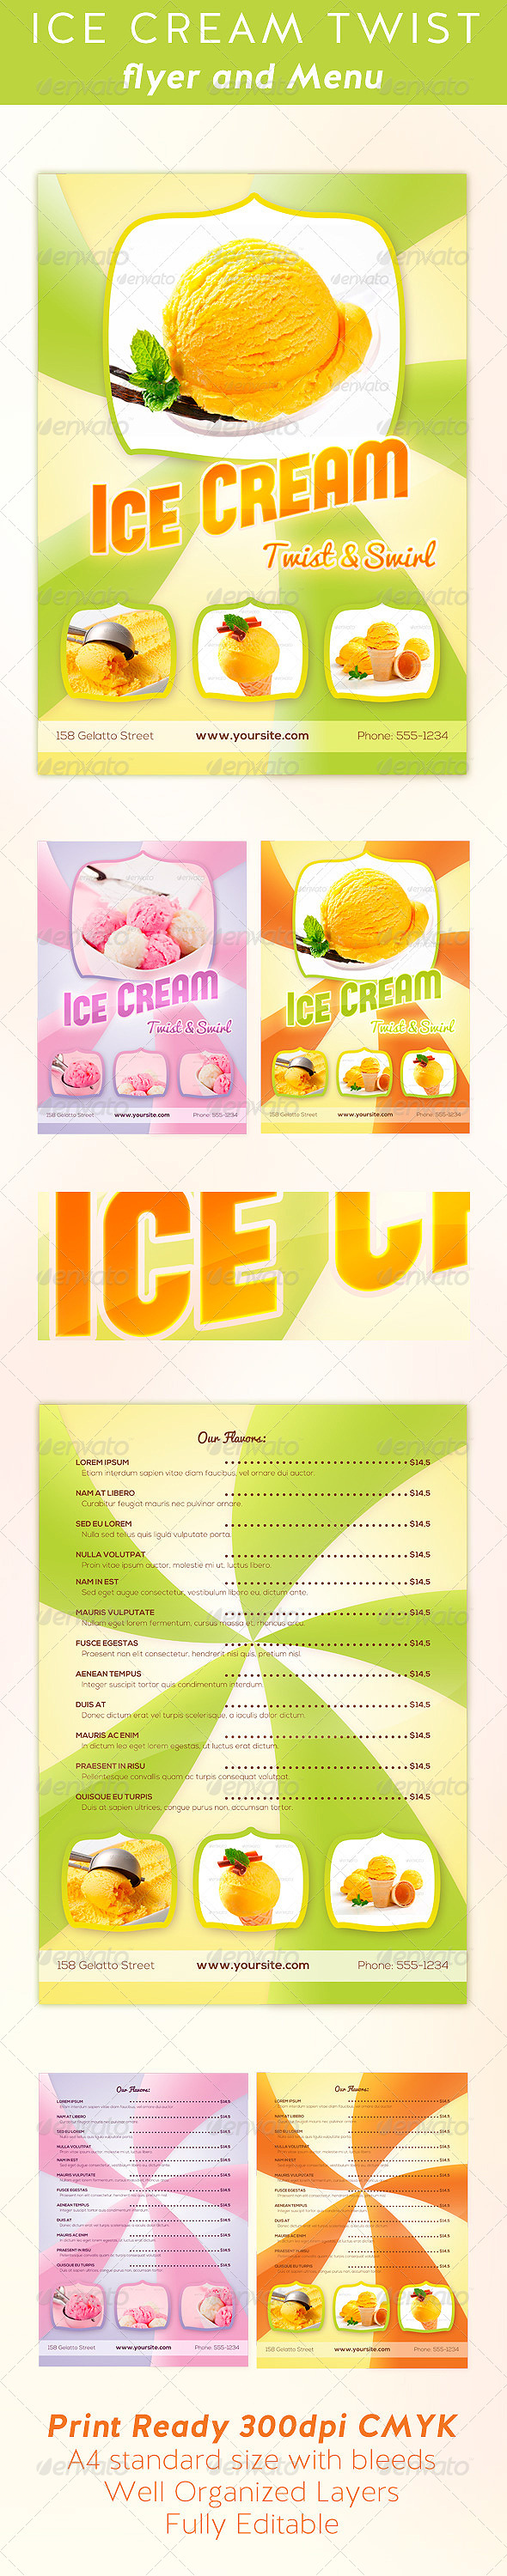 Ice Cream Twist Flyer and Menu Template - Flyers Print Templates